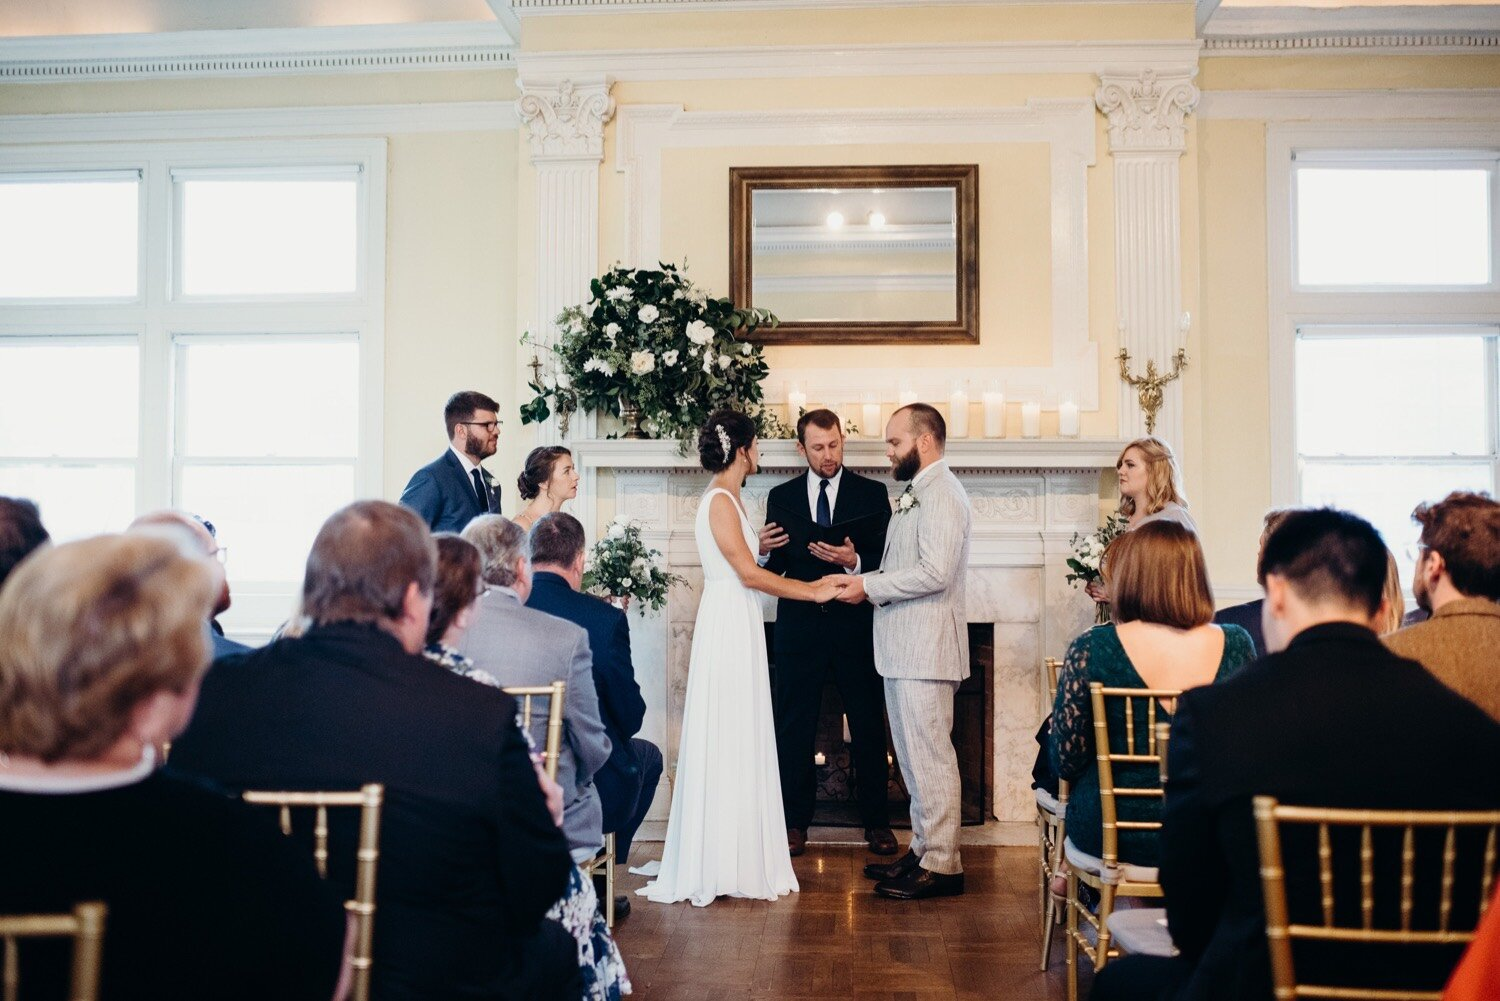 39_josephine_butler_center_photographer_dc_parks_washington_wedding.jpg